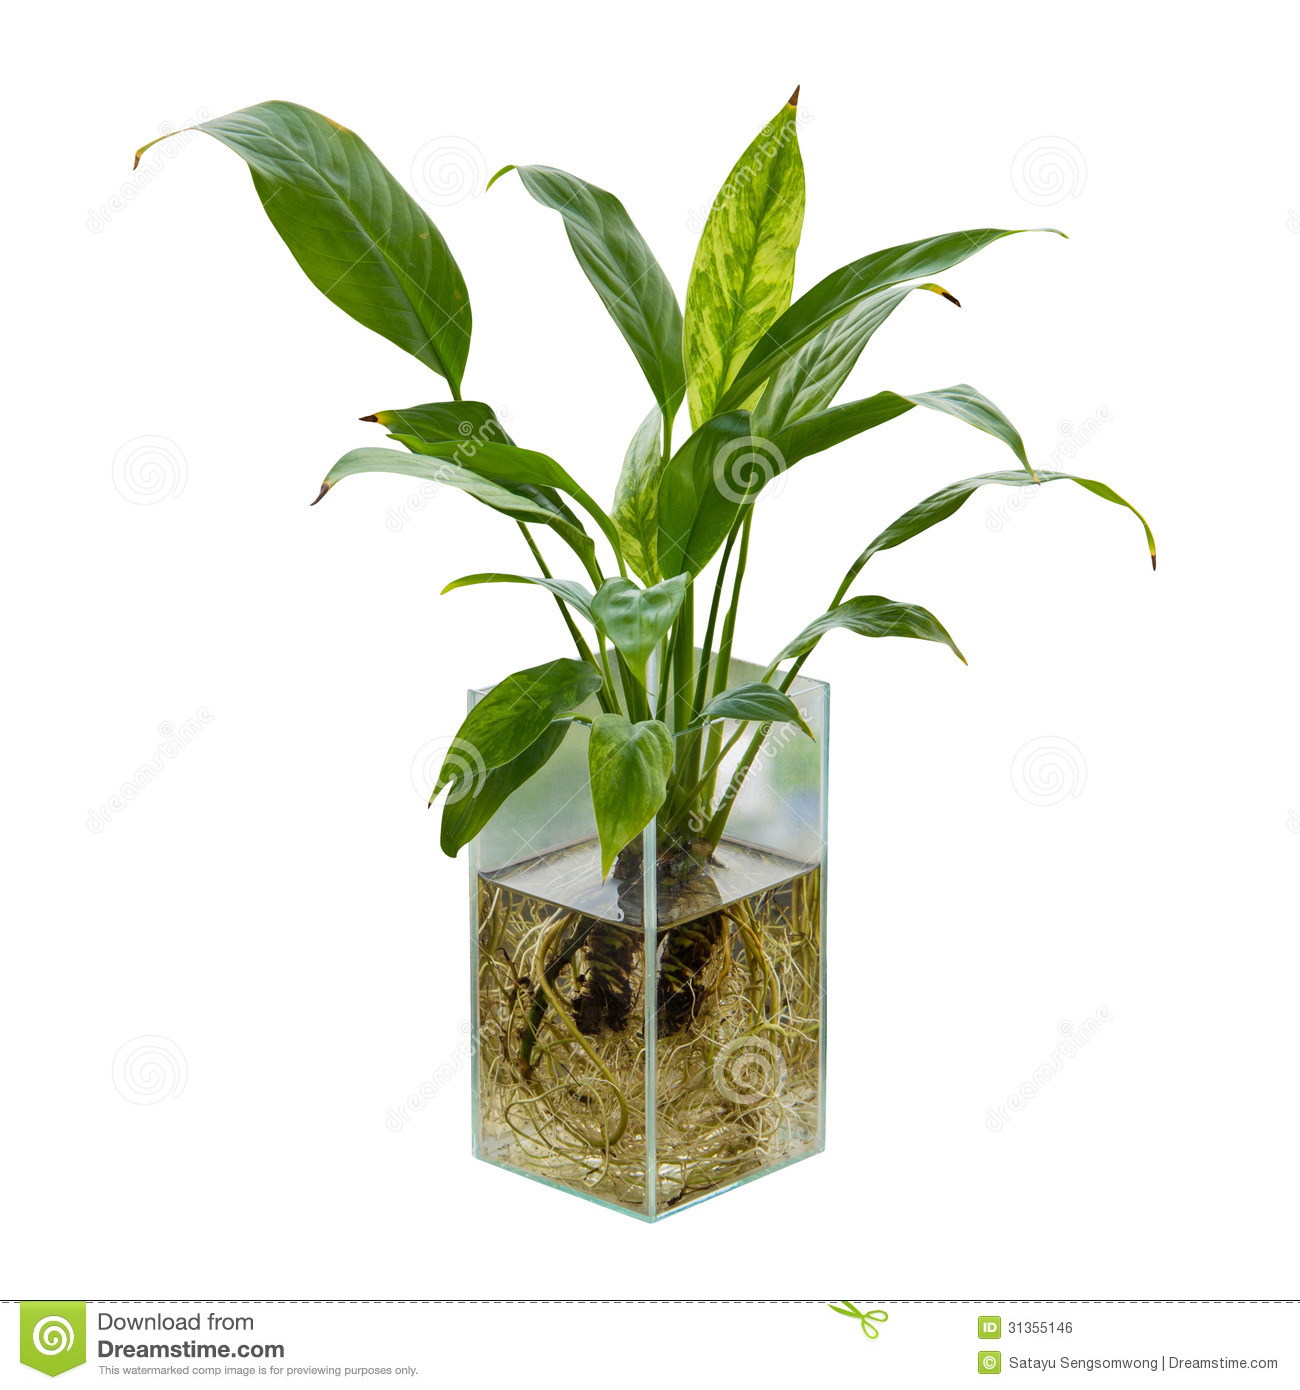 Spathiphyllum Or Peace Lily Royalty Free Stock Image.